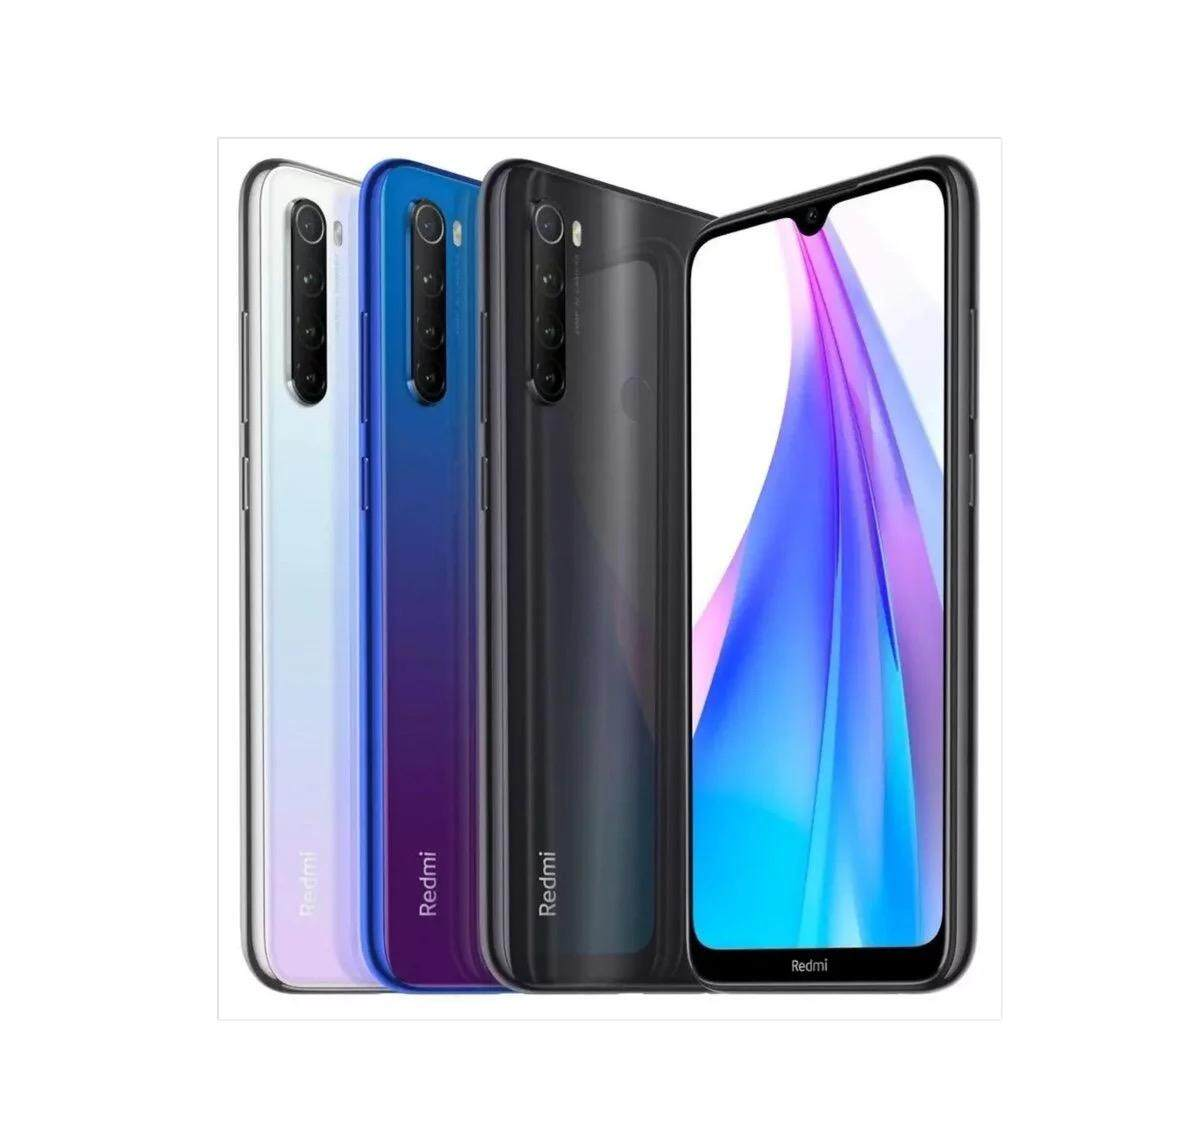 Xiaomi Redmi Note 8T NFC Fast Charge 3+32GB, 4+64GB, 4+128GB [Global version] Smartphone Android Handphone